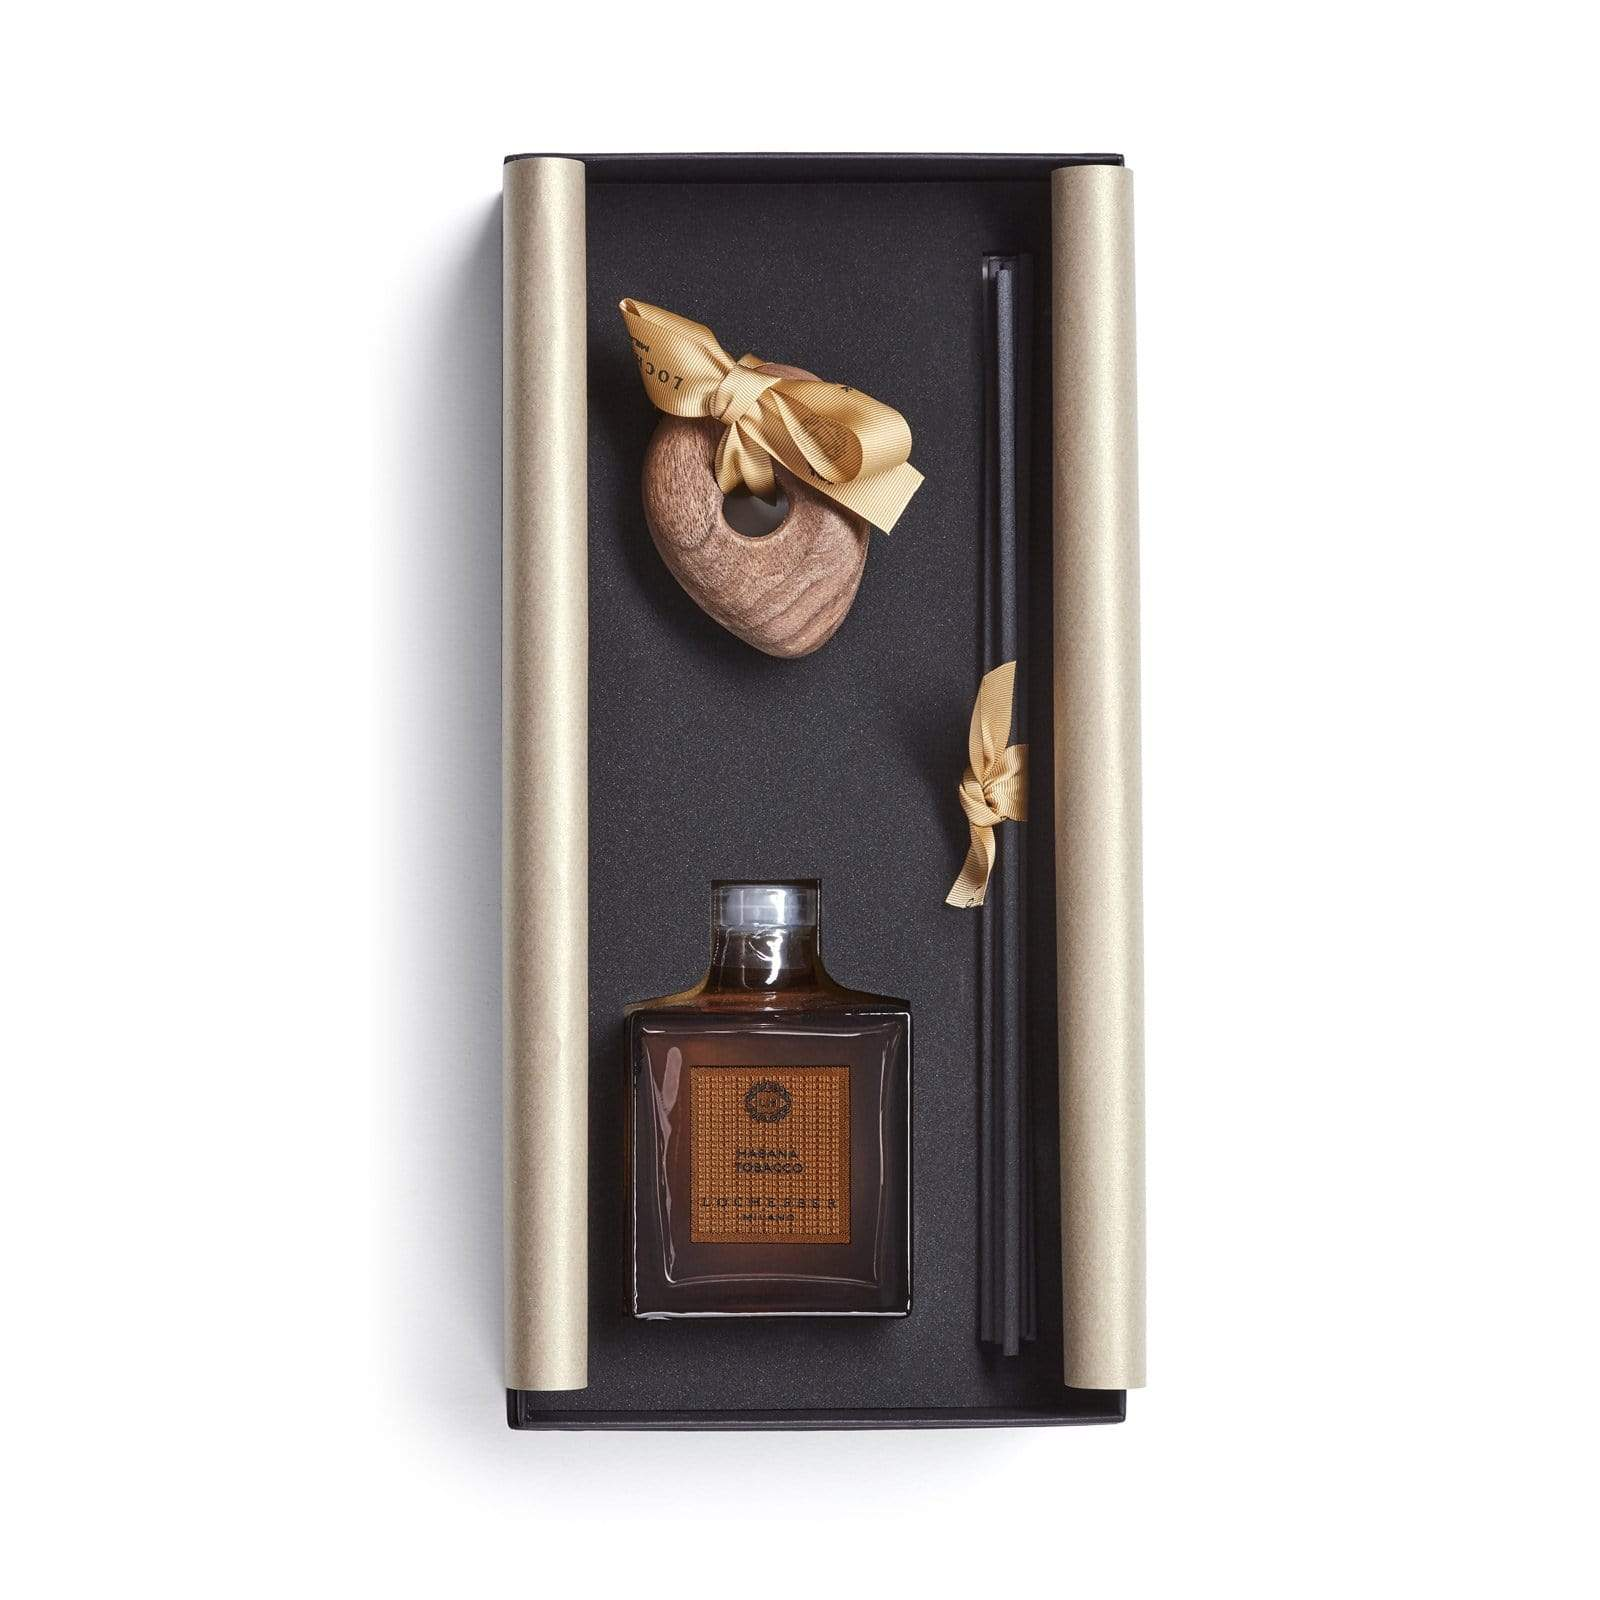 Locherber Milano Home Fragrance 250ml Habana Tobacco Diffuser Sculpted Lid Limited Edition